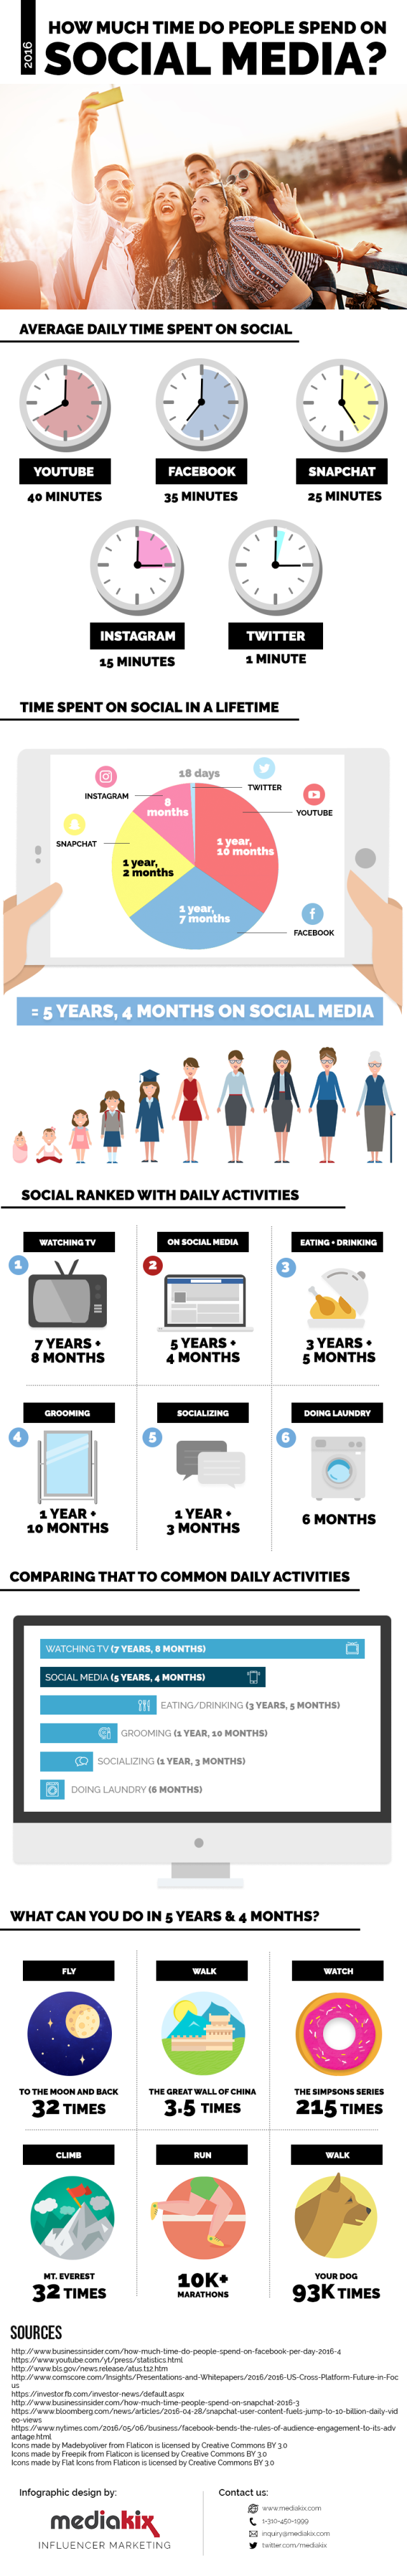 How-Much-Time-Is-Spent-On-Social-Media.png